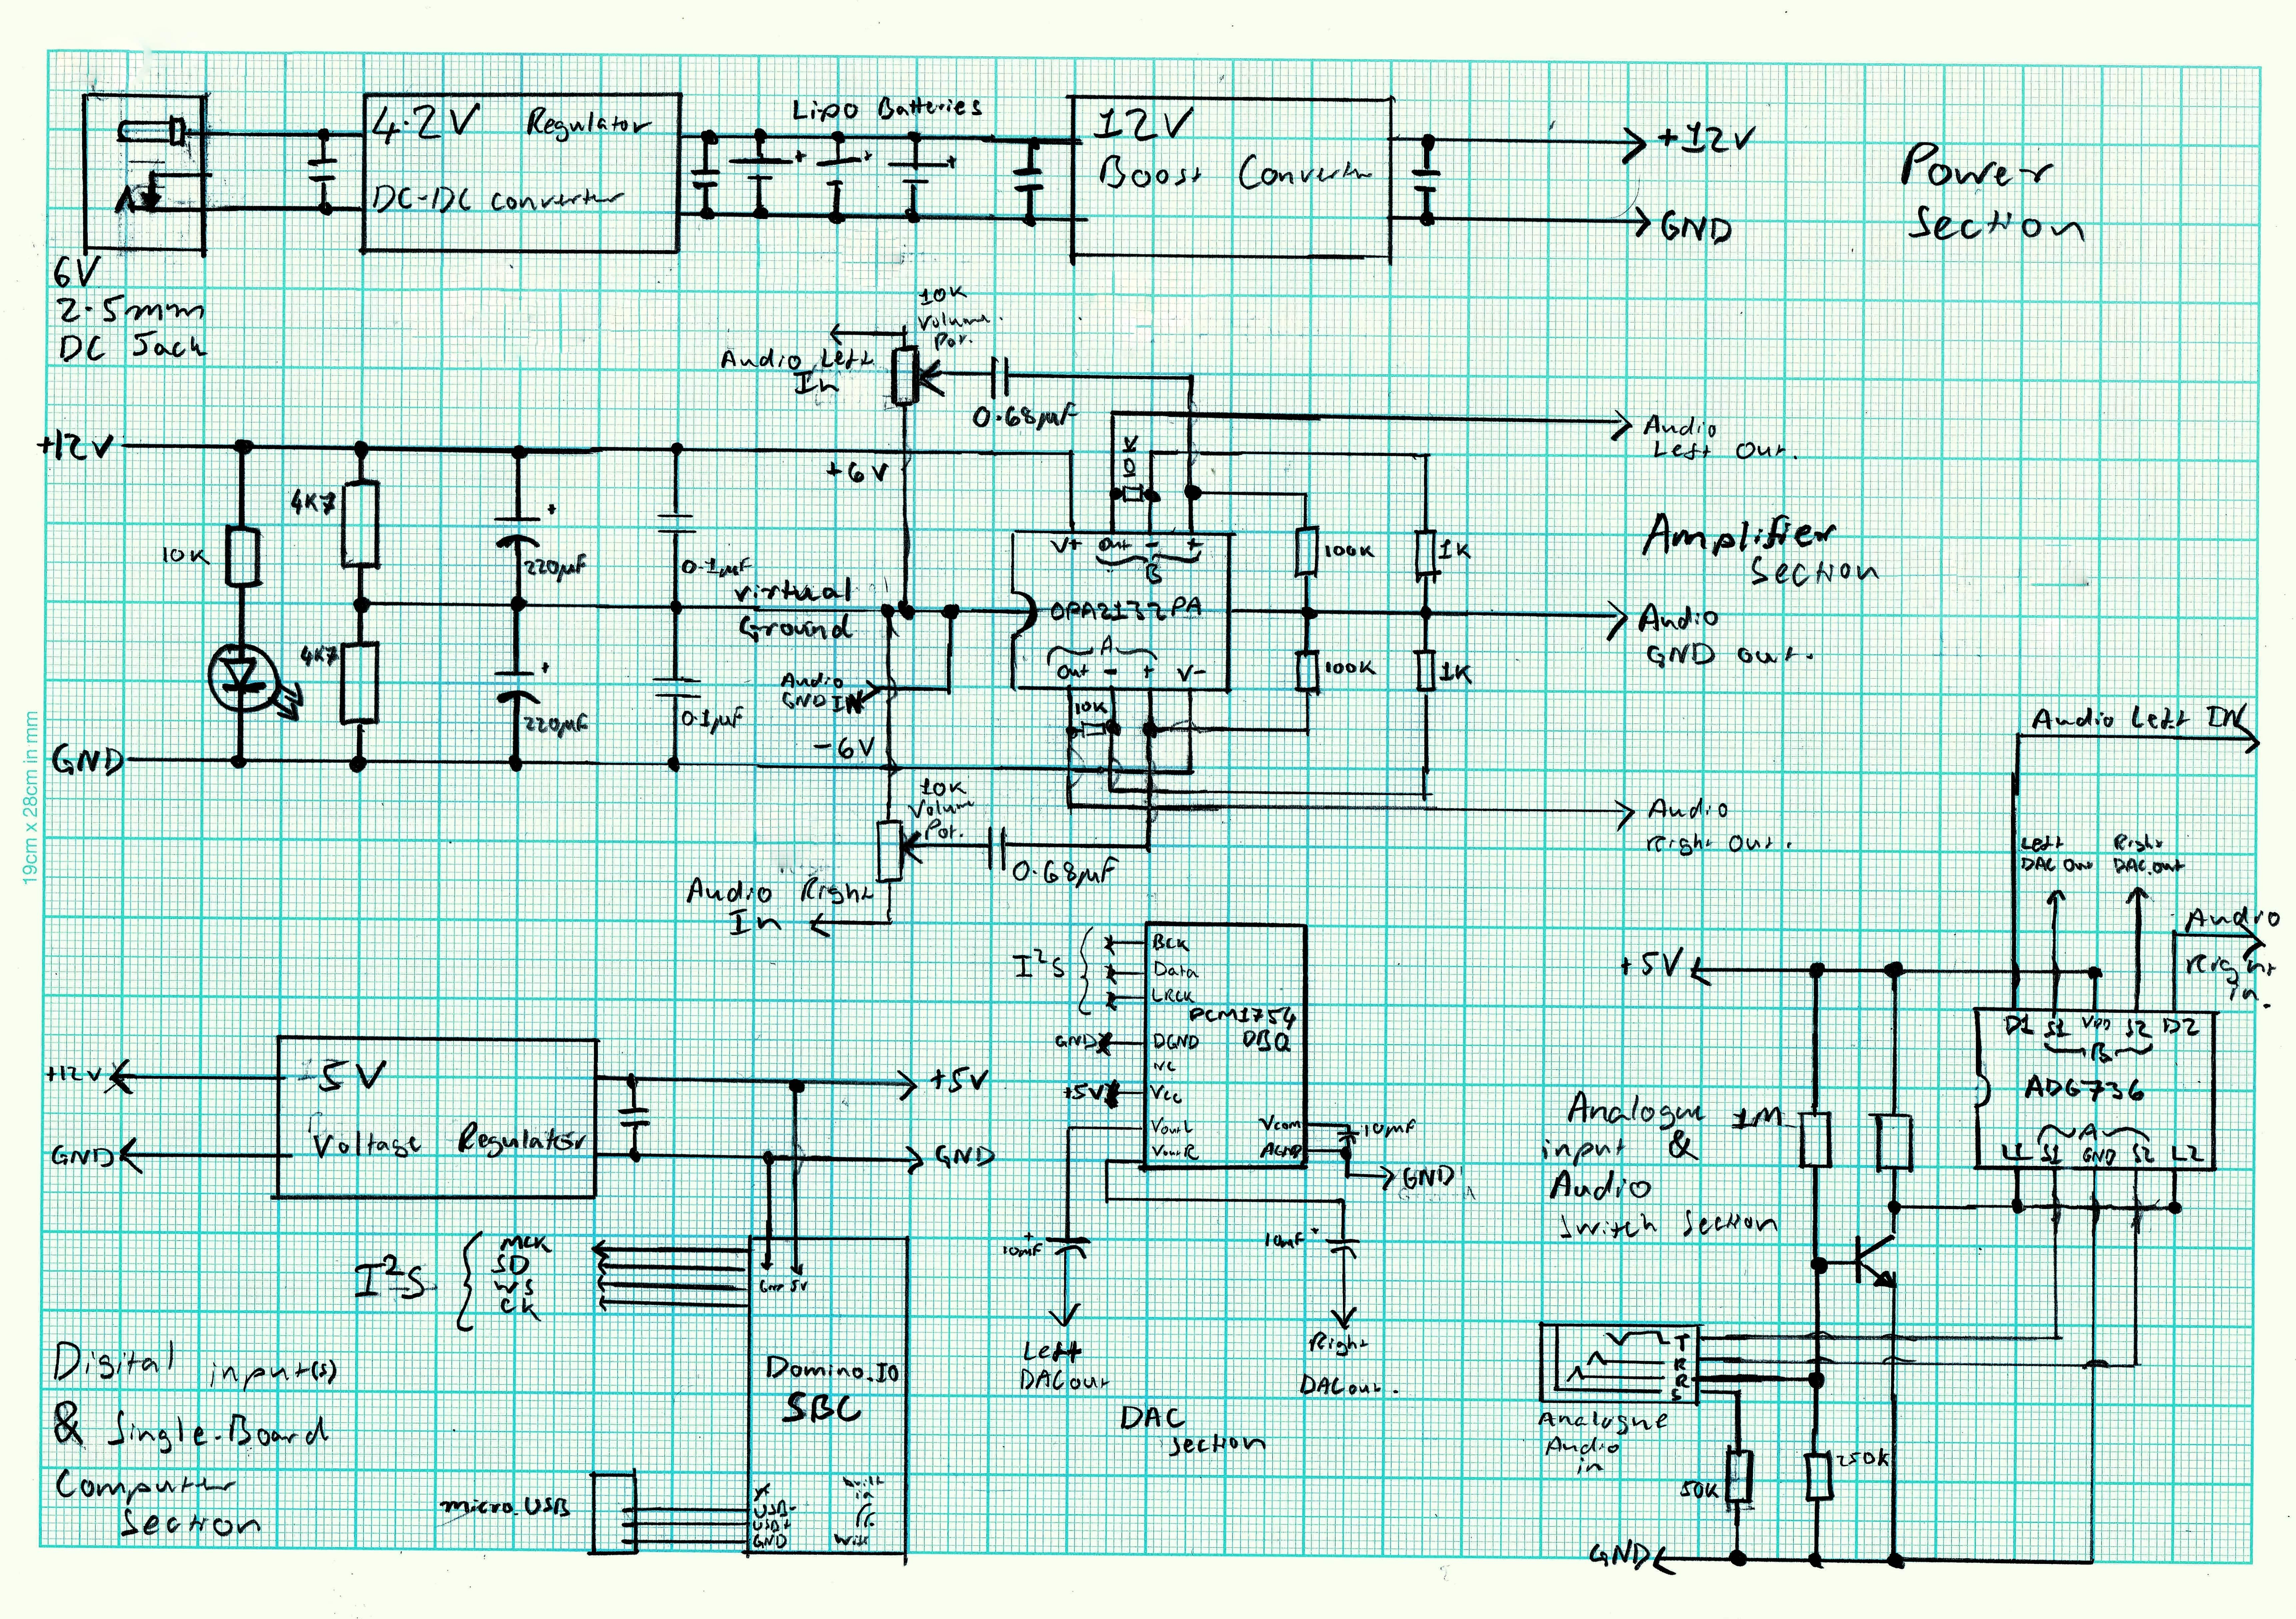 Portable Wi Fi Dac Amplifier Block Diagram Of The Headphone Ip Core I Drew Up Circuit Schematic Using Layout Ics Am Going To Use Then Used This Sketch As A Reference Make On Kicad